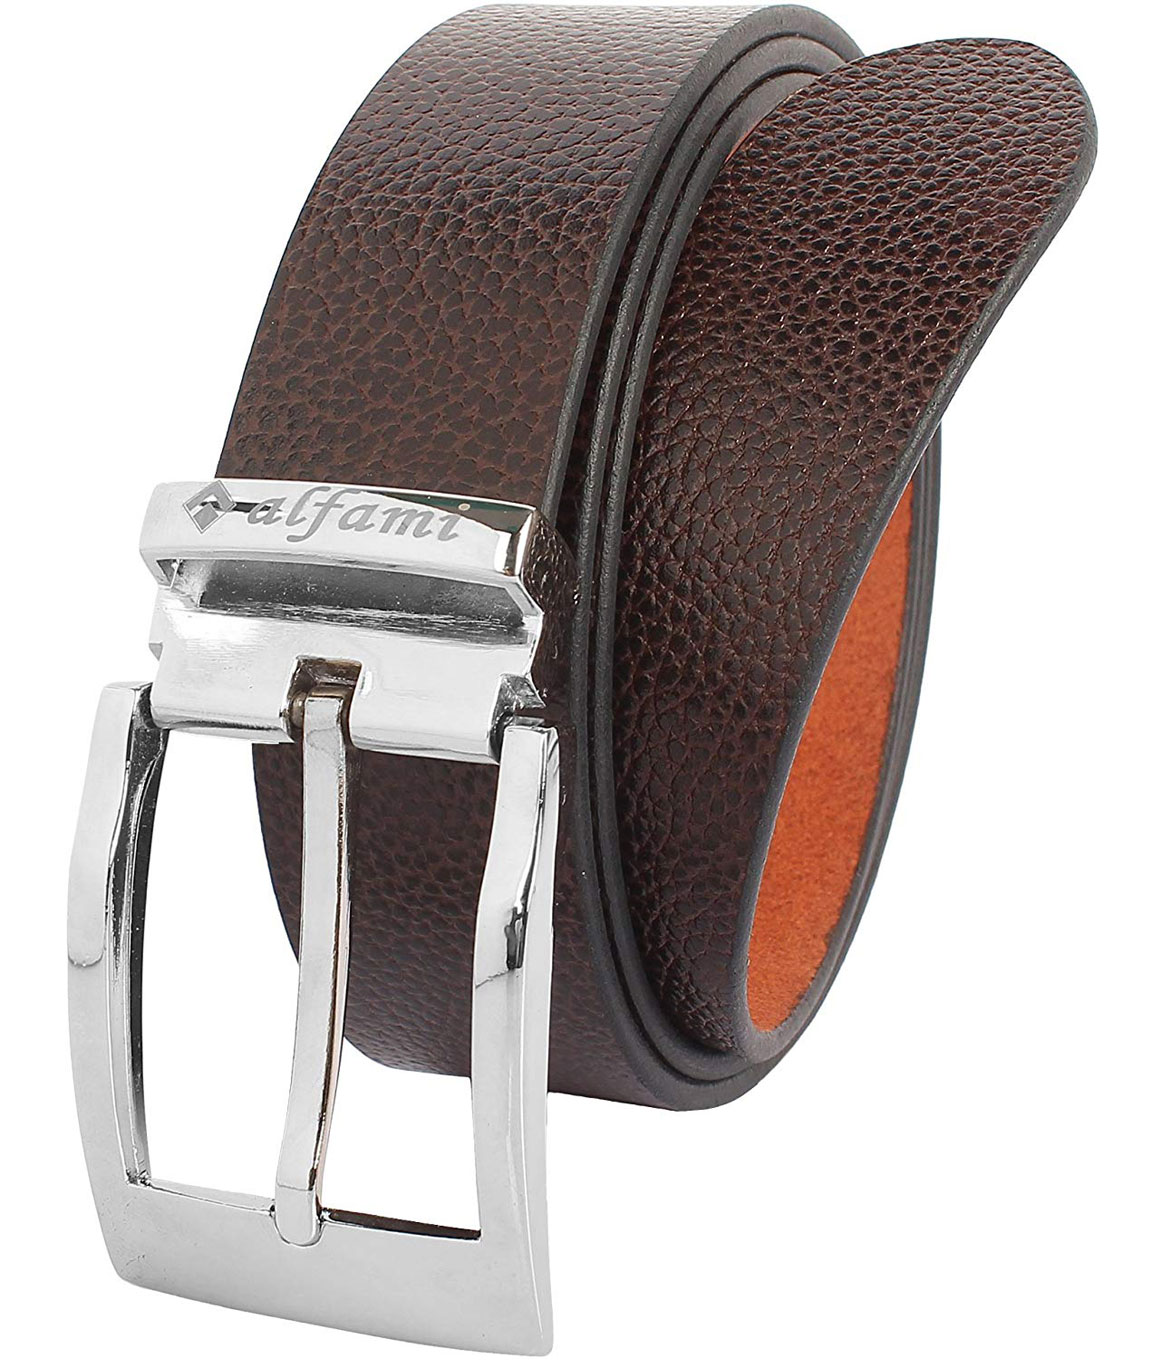 Alfami Mens Genuine Leather Belt Brown Colour All Sizes LC Pattern